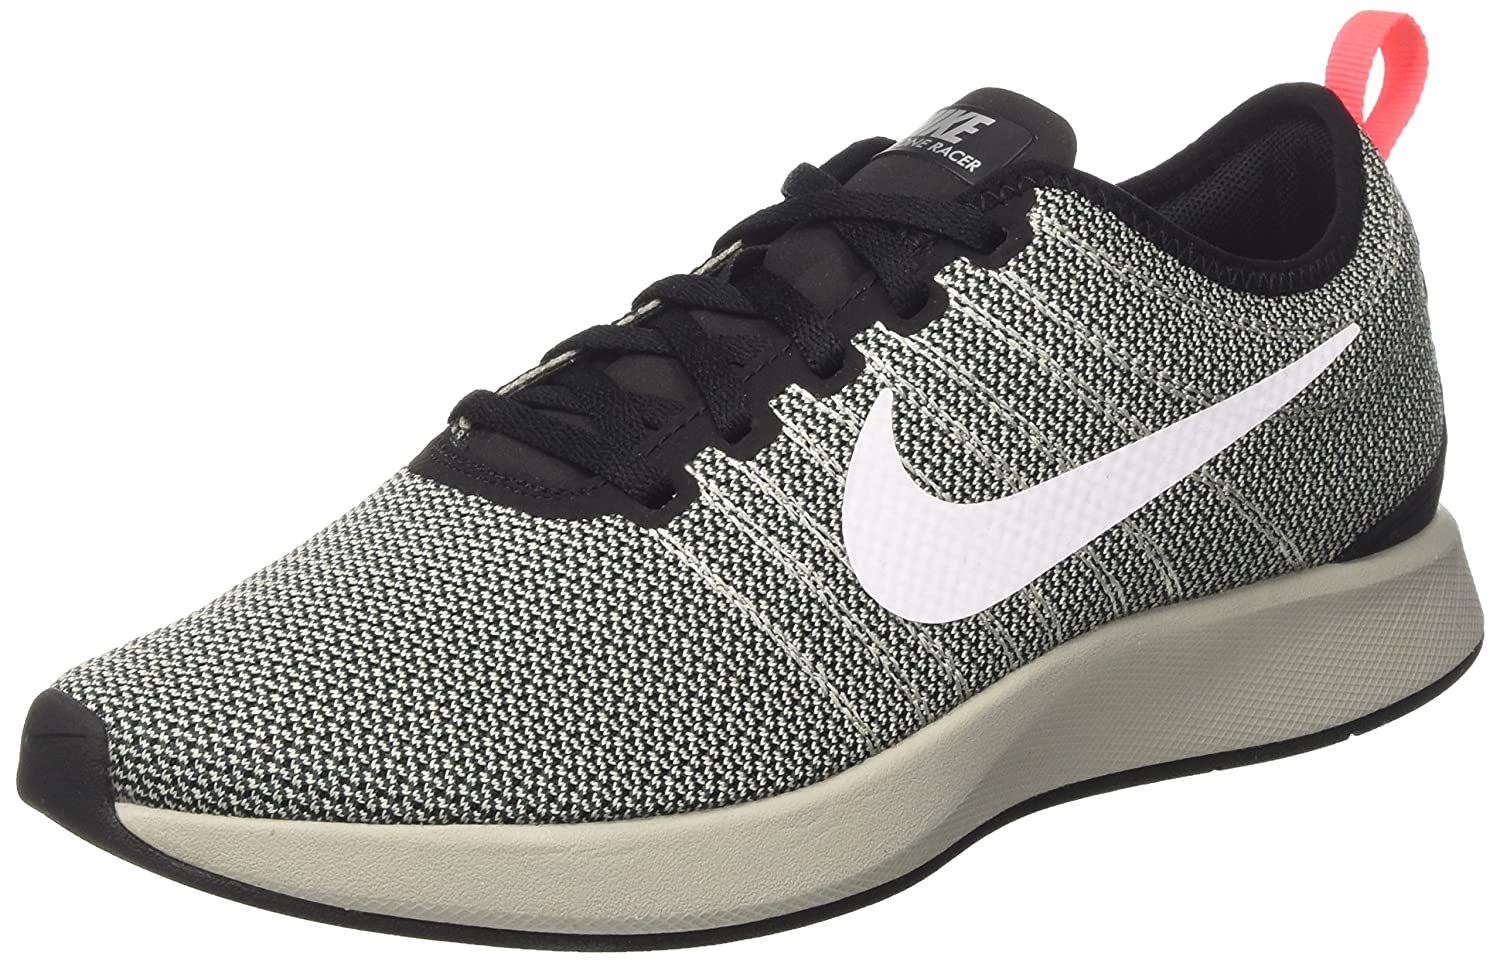 NIKE Men's Dualtone Racer Casual Shoe B073D63FQQ 8.5 D(M) US|Black/White-pale Grey